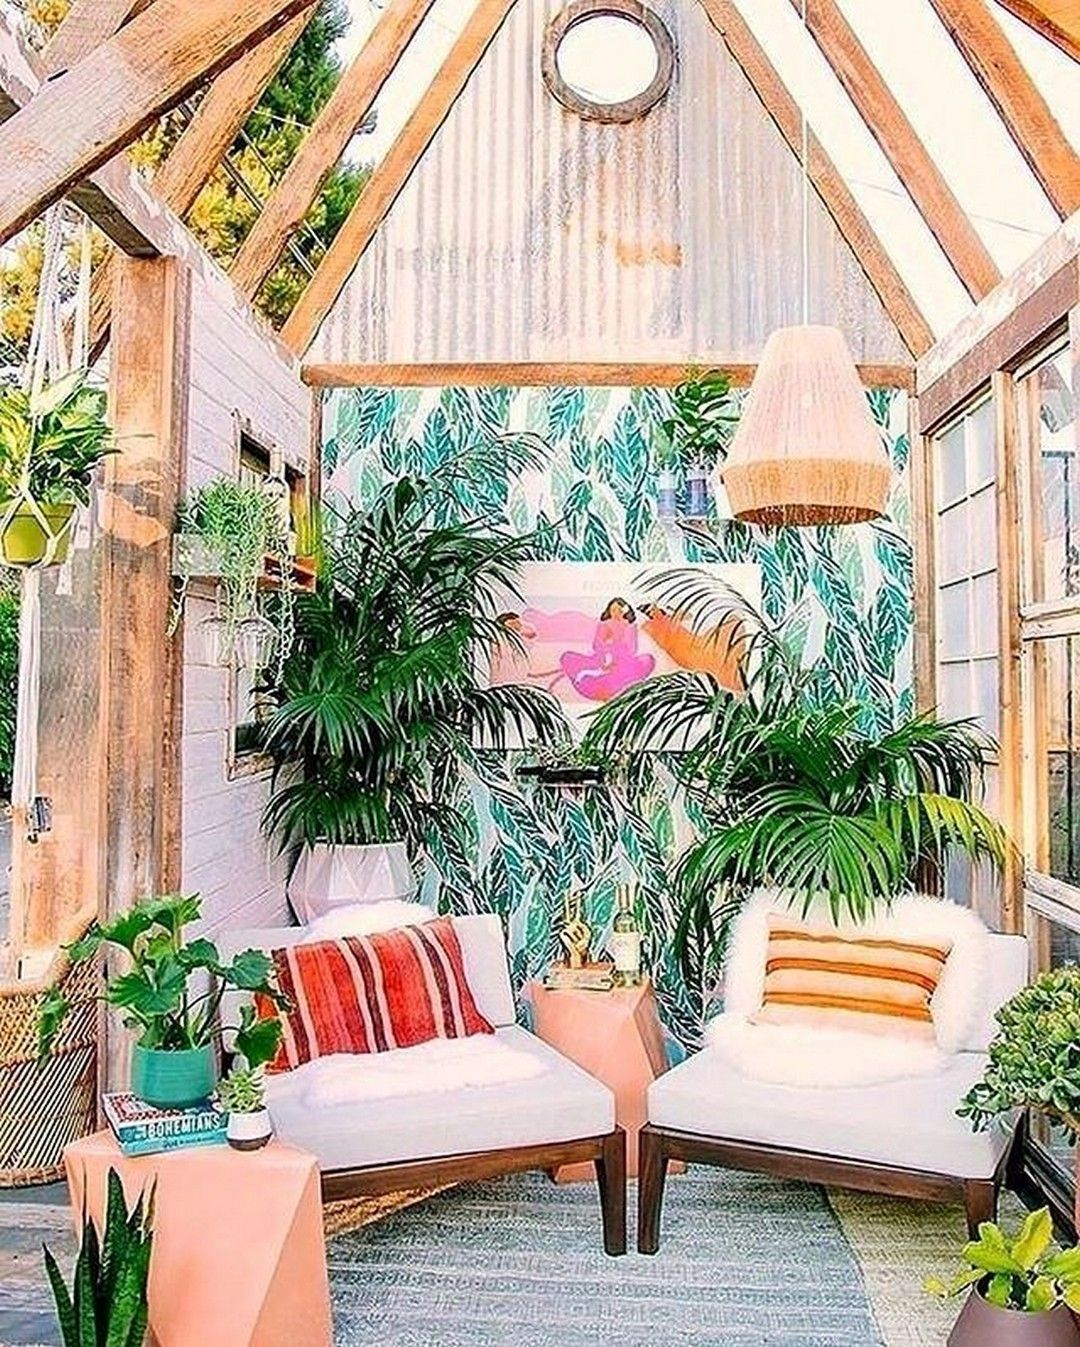 25 Wonderful Balcony Design Ideas For Your Home: 40 Wonderful She-Sheds Decor Ideas To Inspire Your Garden